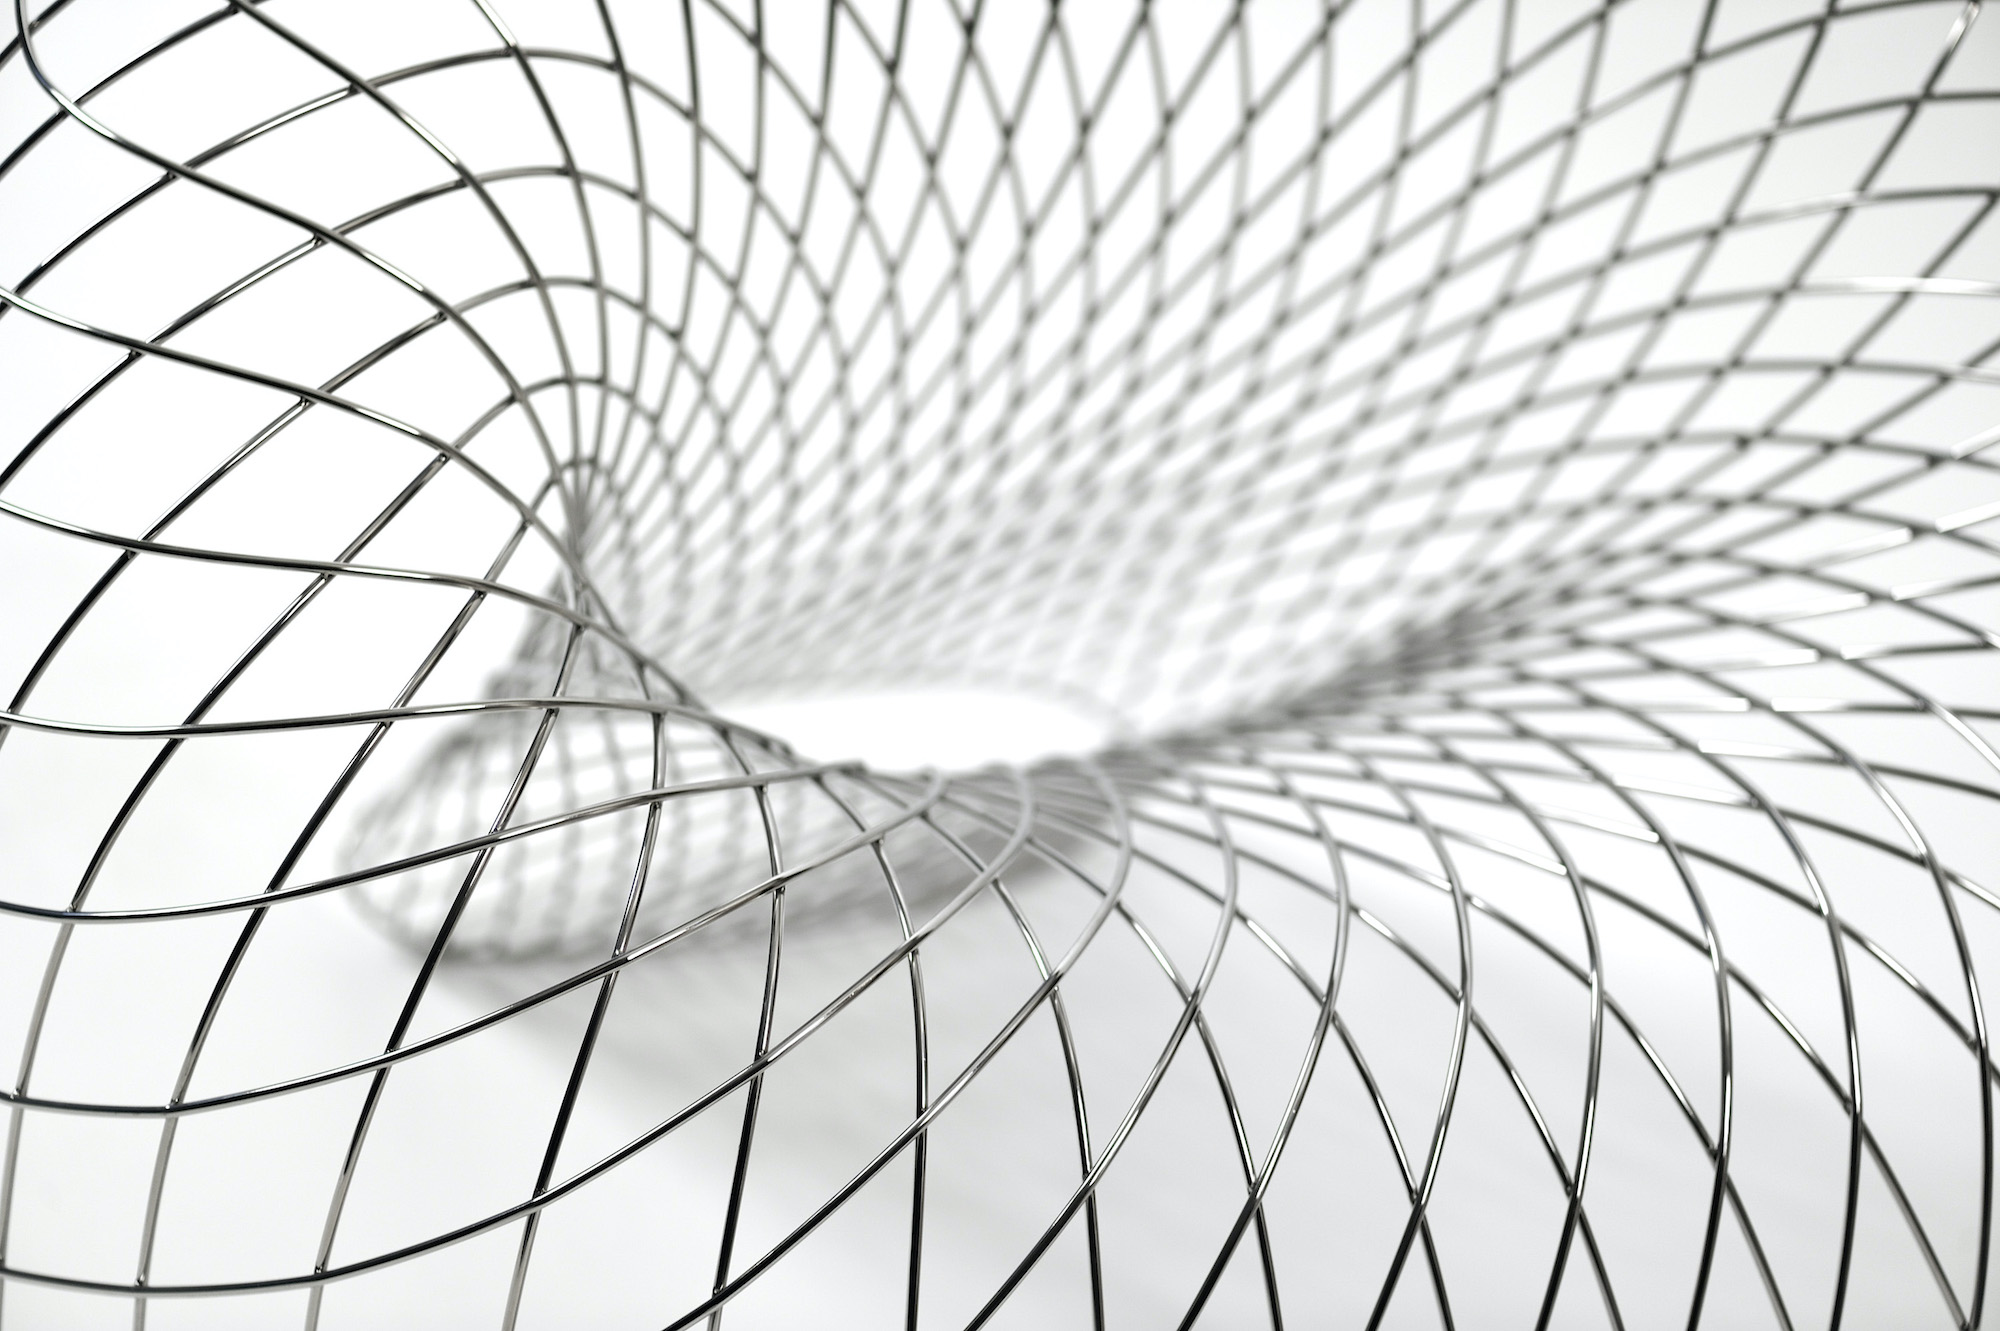 Brodie NEILL  \'Reverb Wire Chair\' (detail) 2010  hand formed, mirror stainless steel rods  Photo: Marzorati Ronchetti  Collection of Patrick Brillet of Patrick Brillet Fine Art Ltd